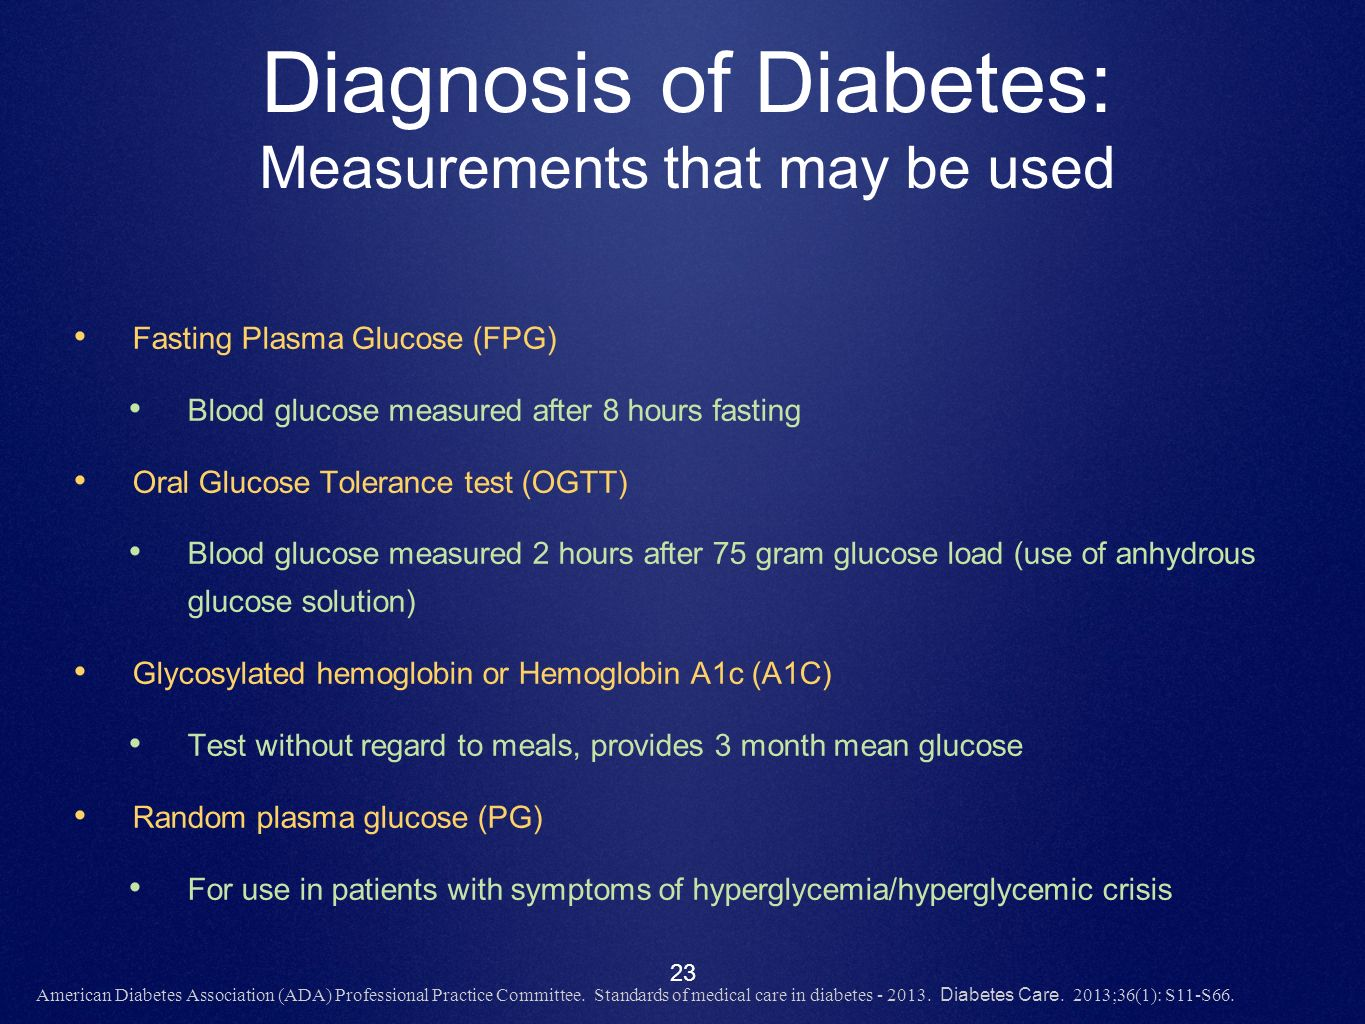 Diagnosis of Diabetes: Measurements that may be used